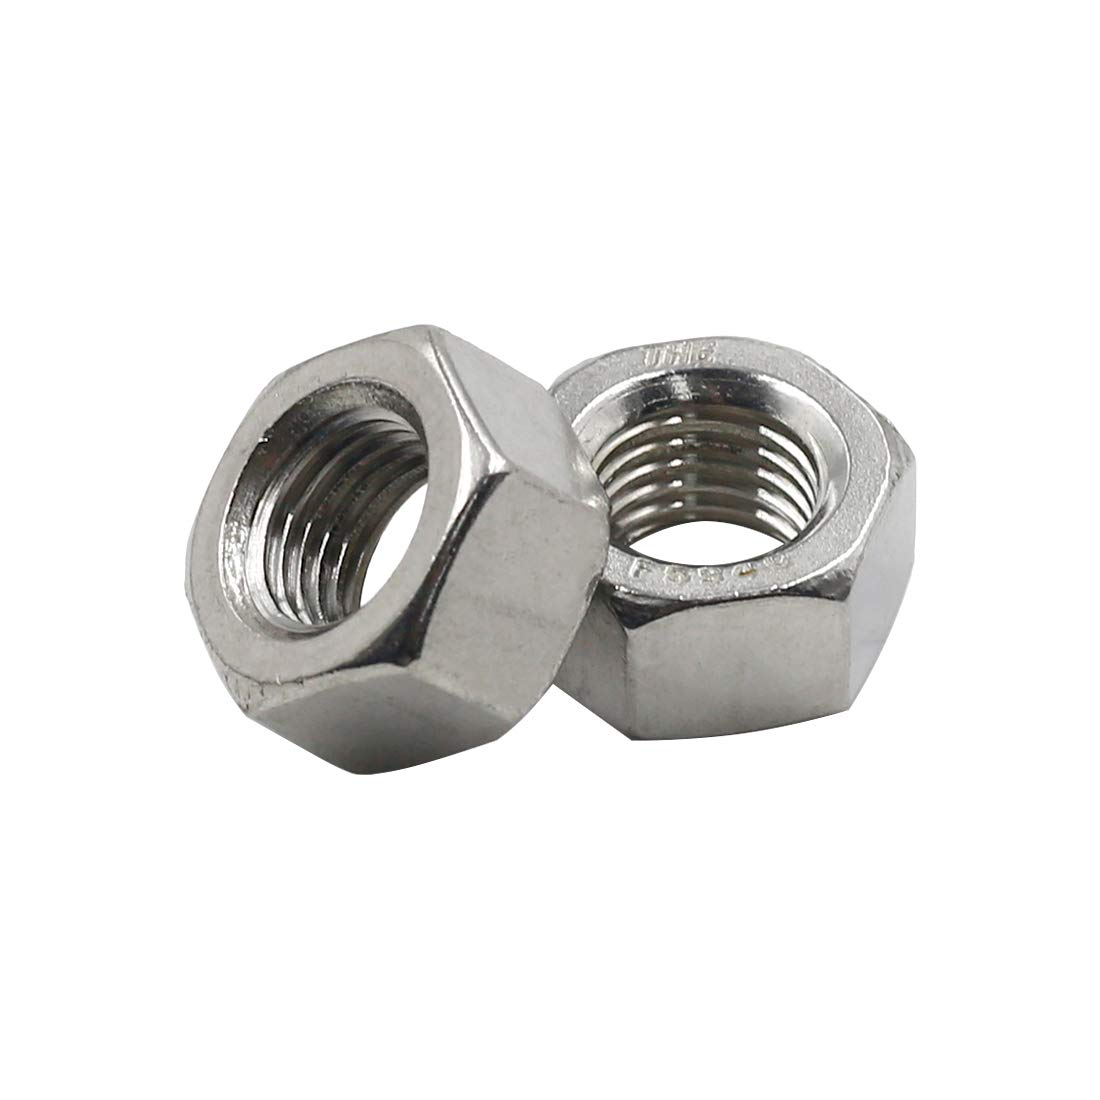 304 Stainless Steel Pack of 20 TOUHIA 7//16-20 Fine Thread Hex Nuts